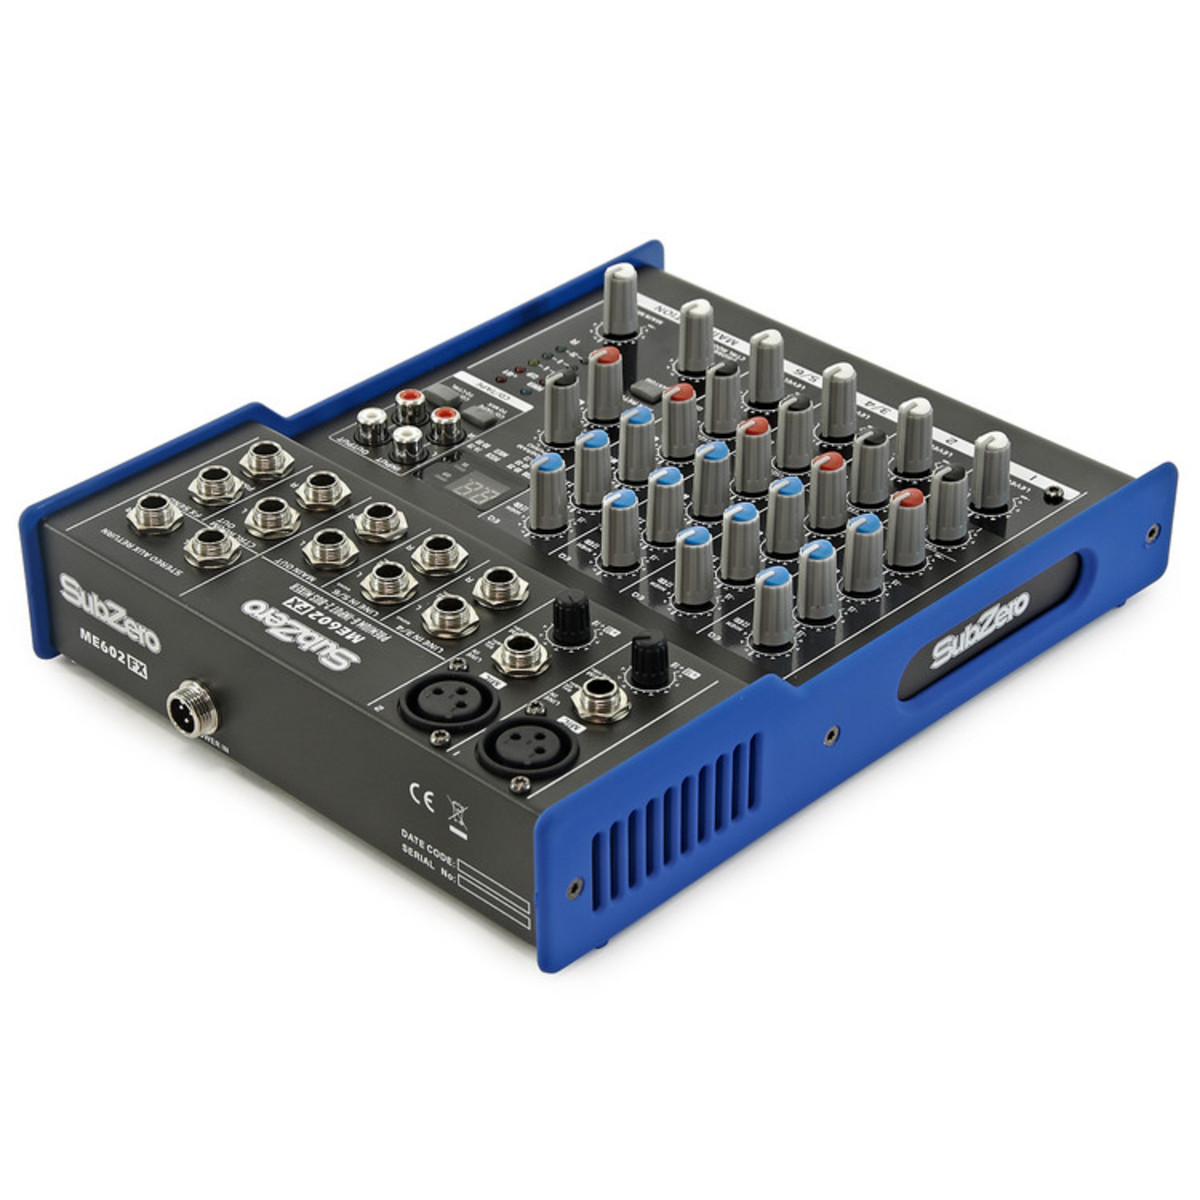 Table de mixage me602fx 6 canaux avec fx par gear4music for Table de mixage xpress 6 keywood